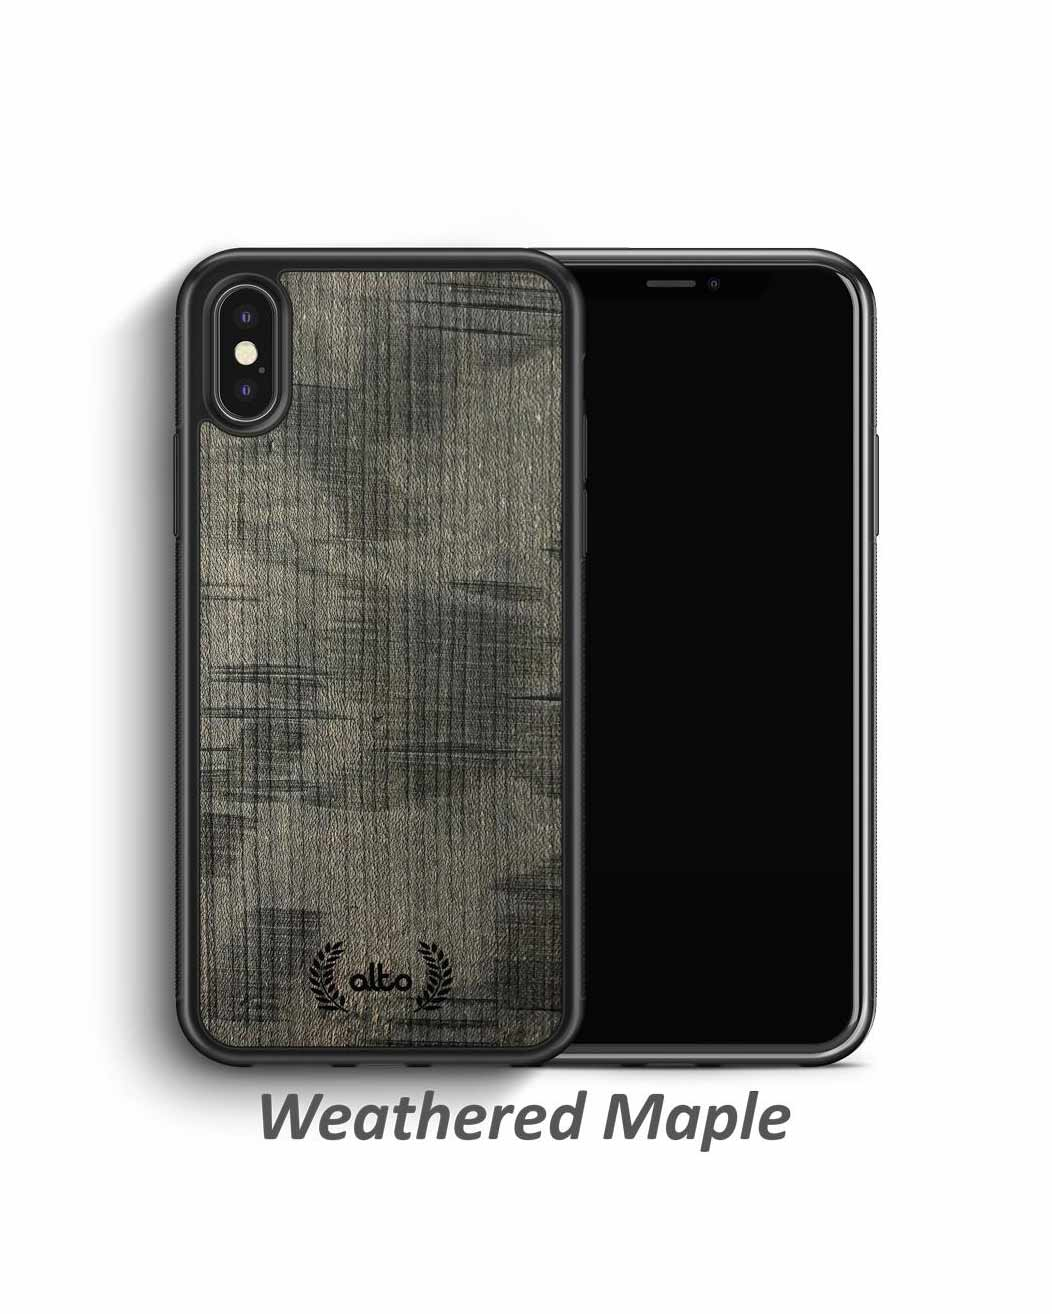 Real Weathered Wood Phone Cases - Maple